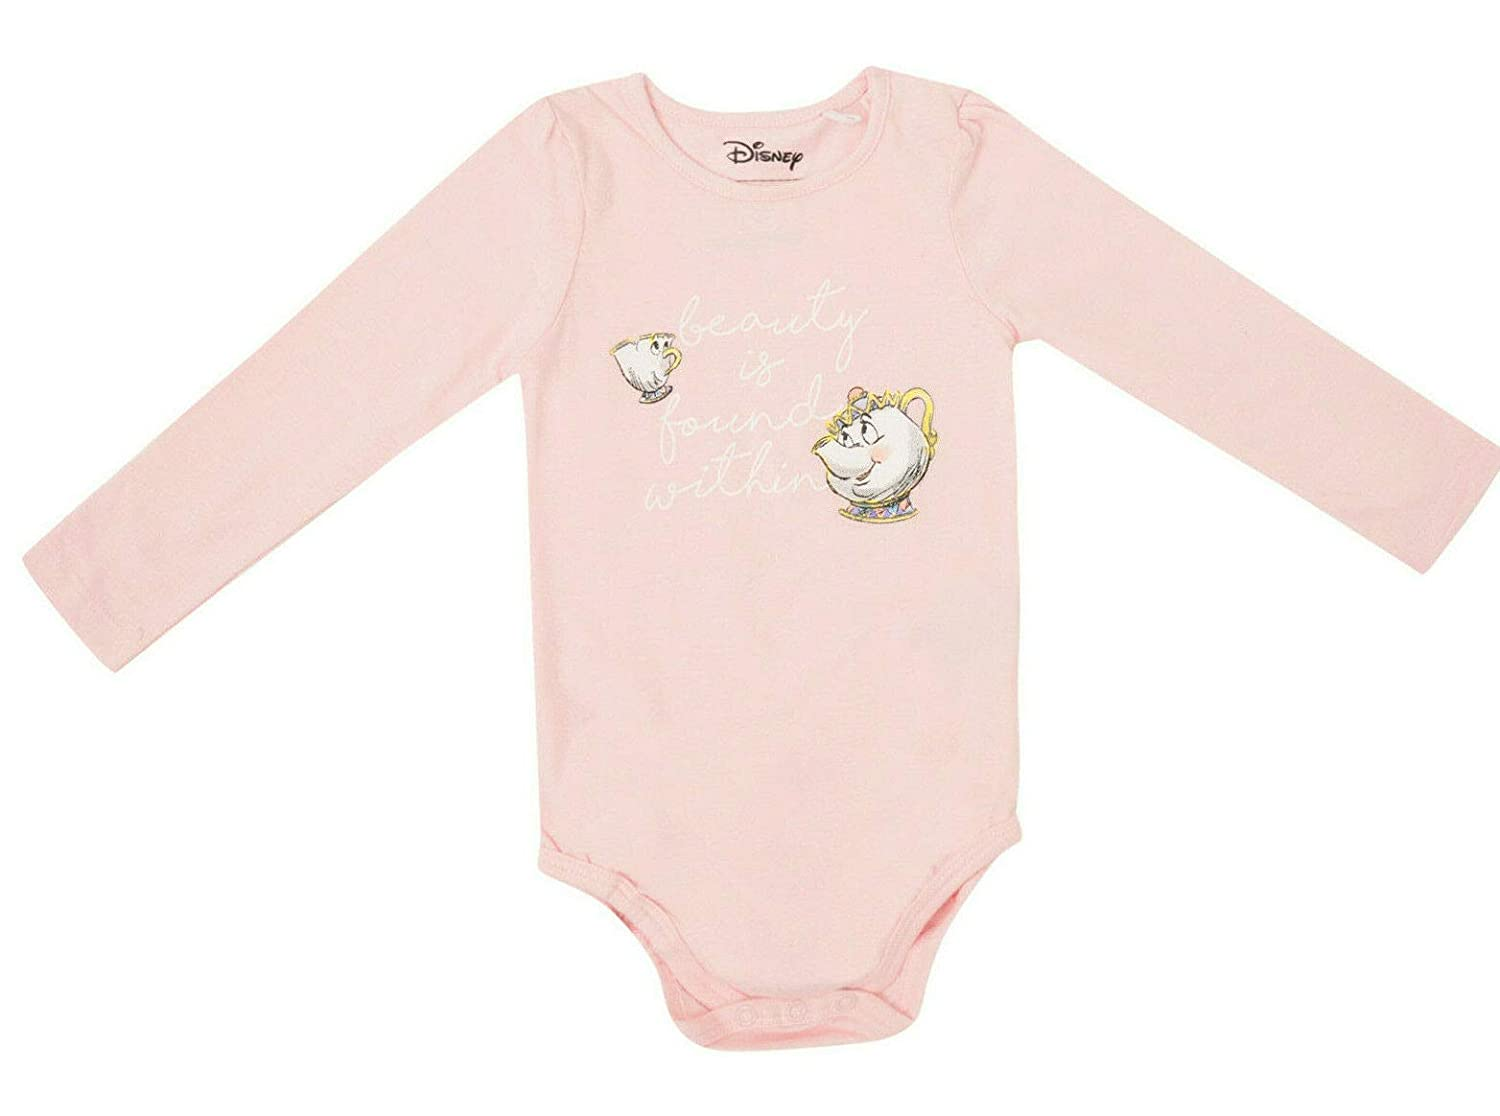 Baby Girls Bodysuit Disney Beauty and The Beast 0-18M Long Sleeved Pink Romper